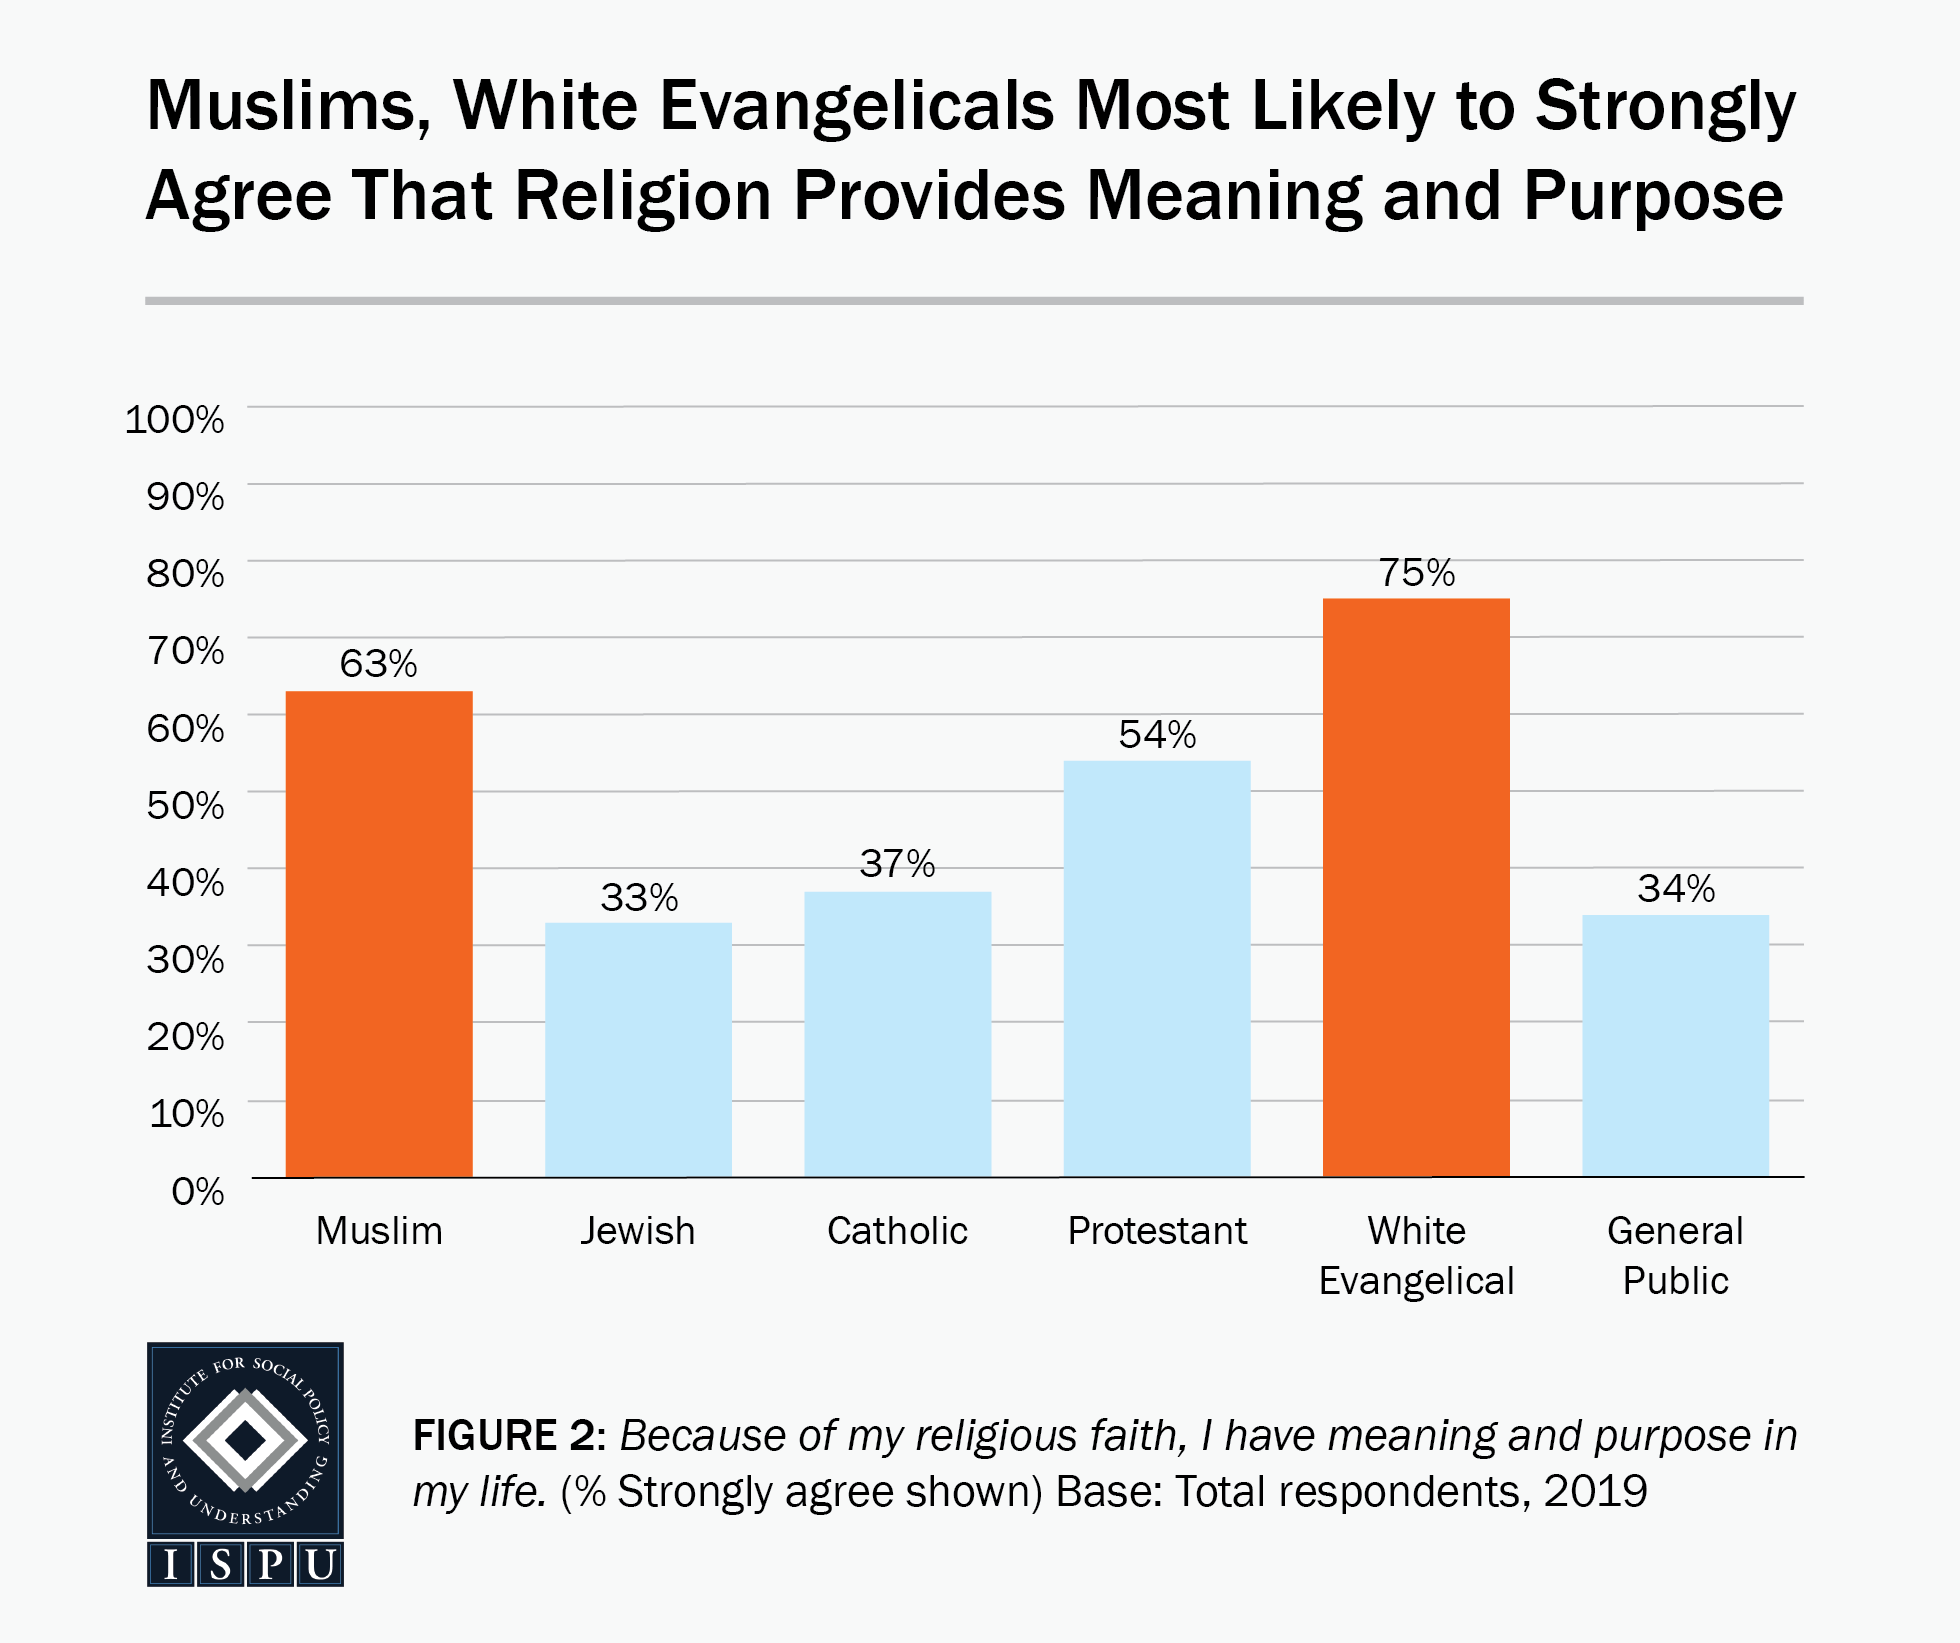 Figure 2: A bar graph showing that Muslims (63%) and white Evangelicals (75%) are the most likely faith groups to strongly agree that religion provides meaning and purpose in their lives